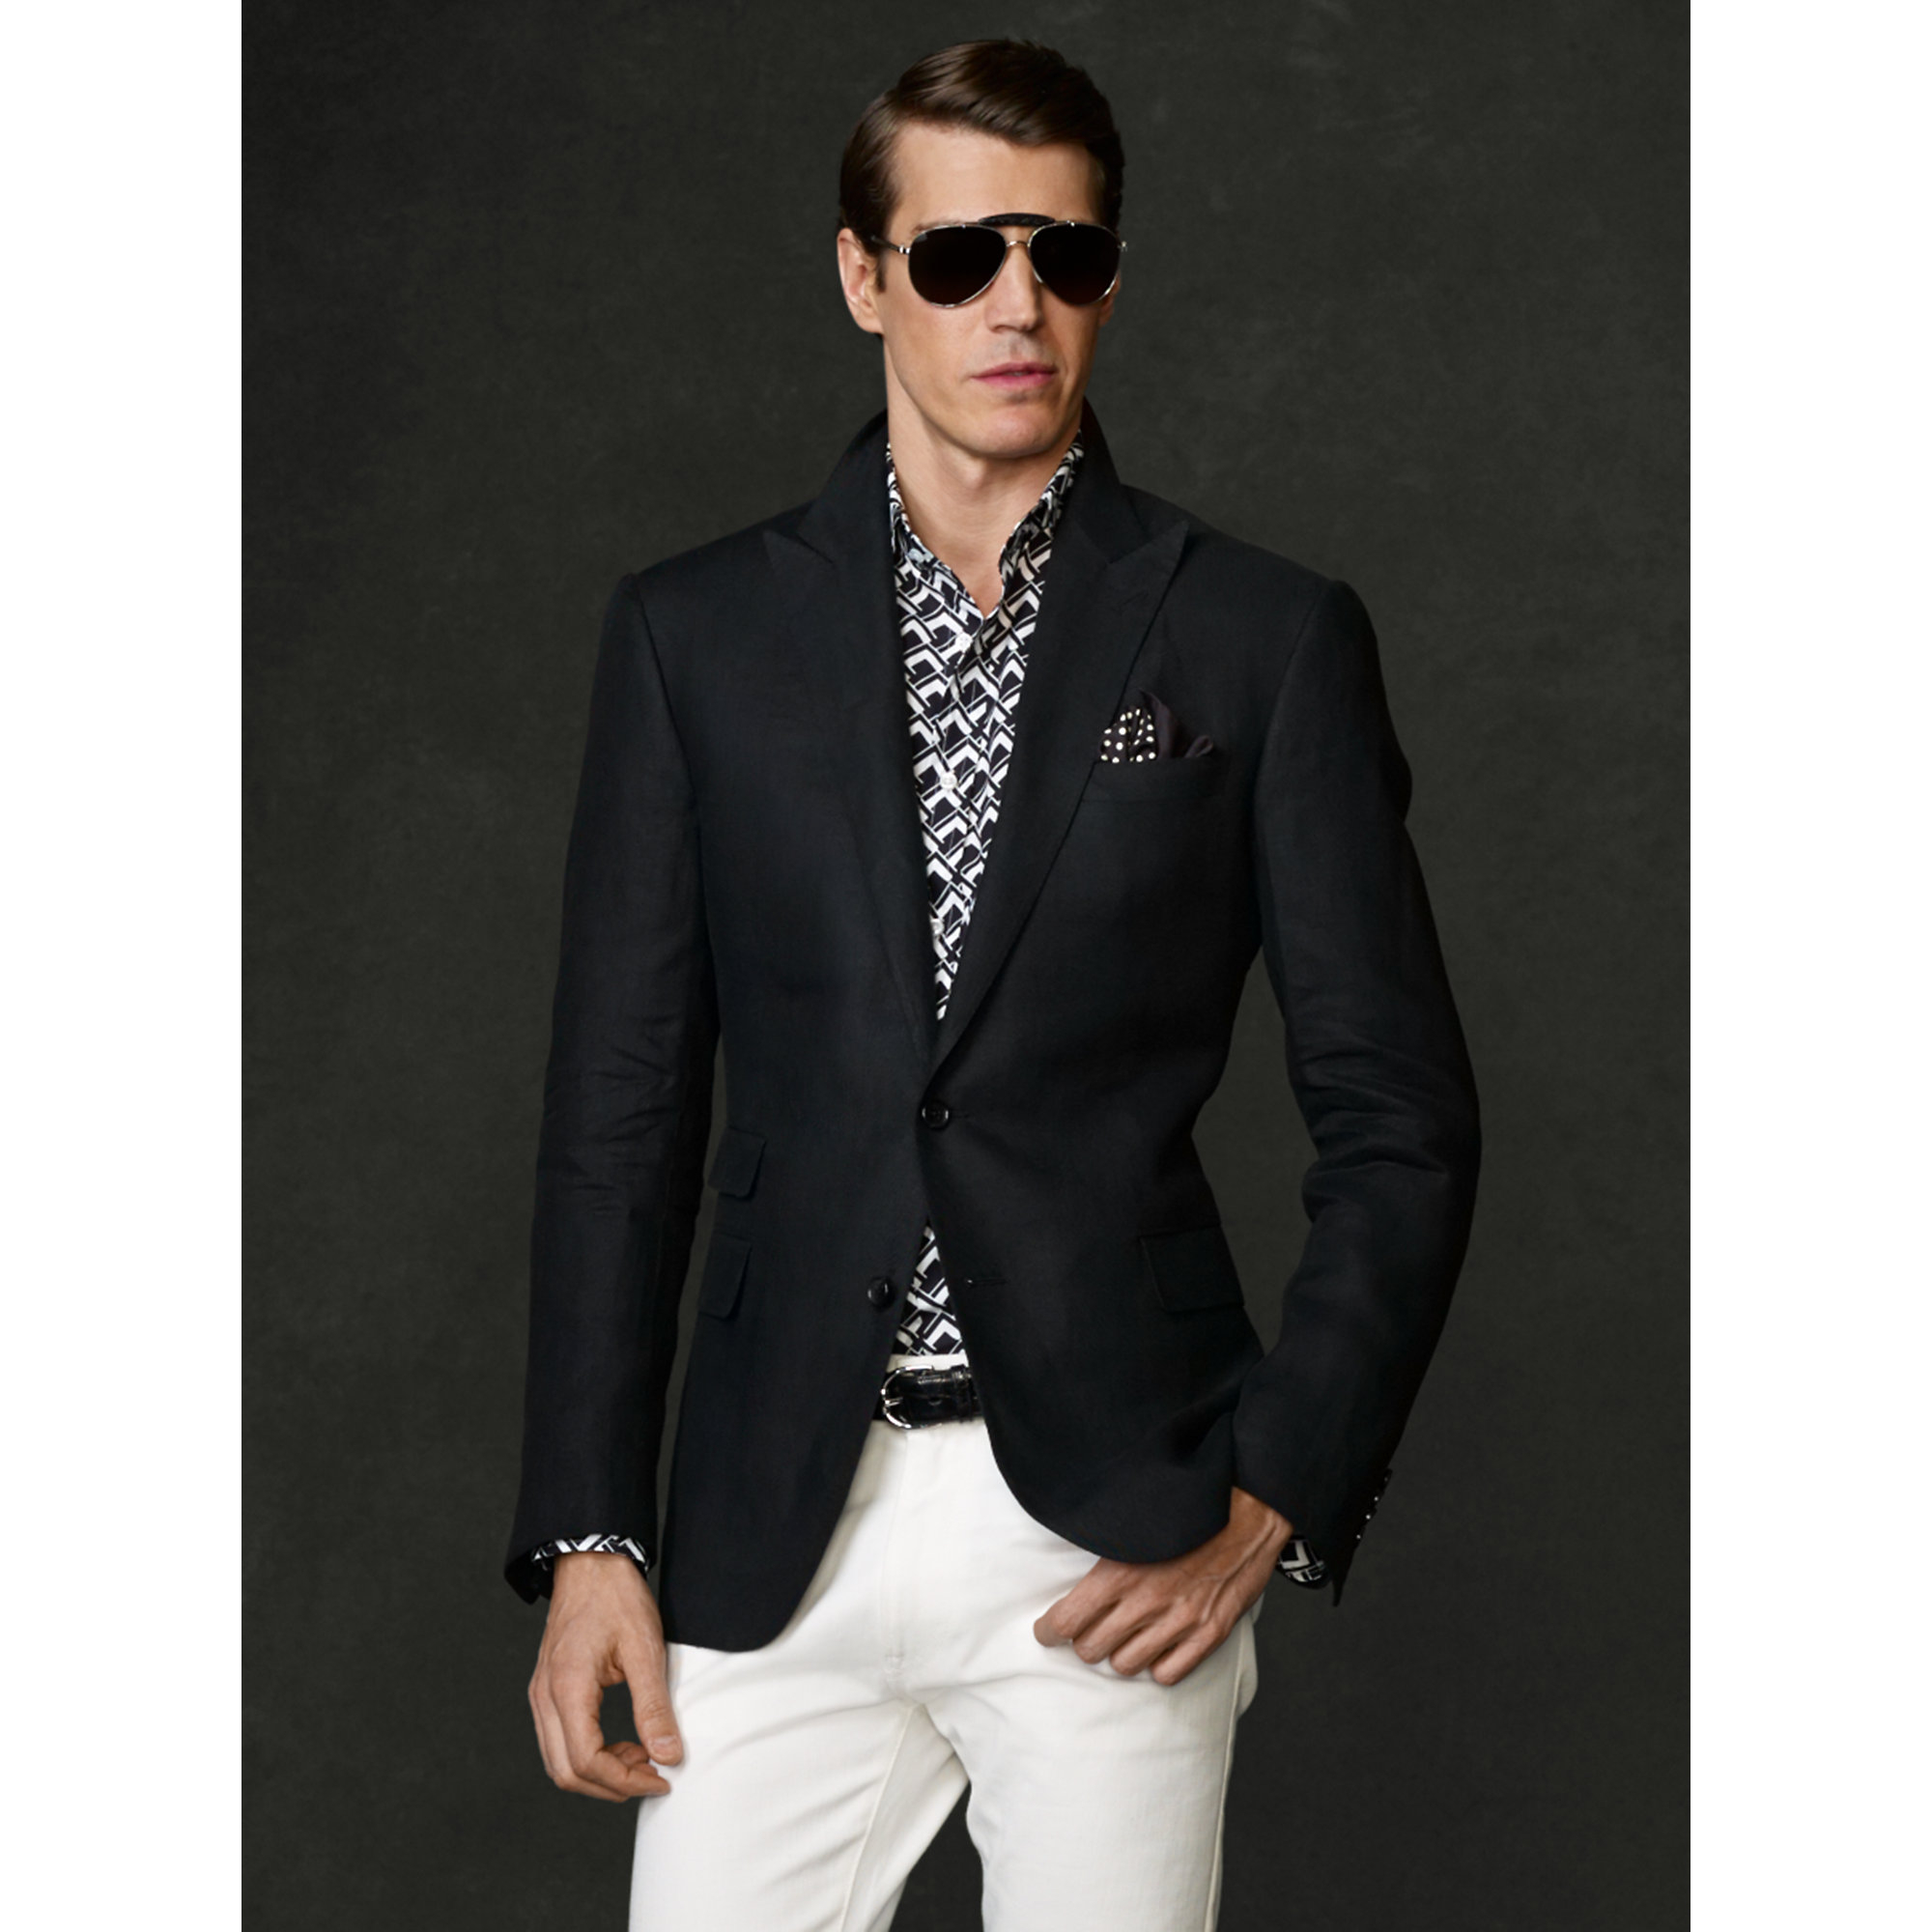 Ralph lauren purple label Custom-Fit Linen Sport Coat in Black for ...